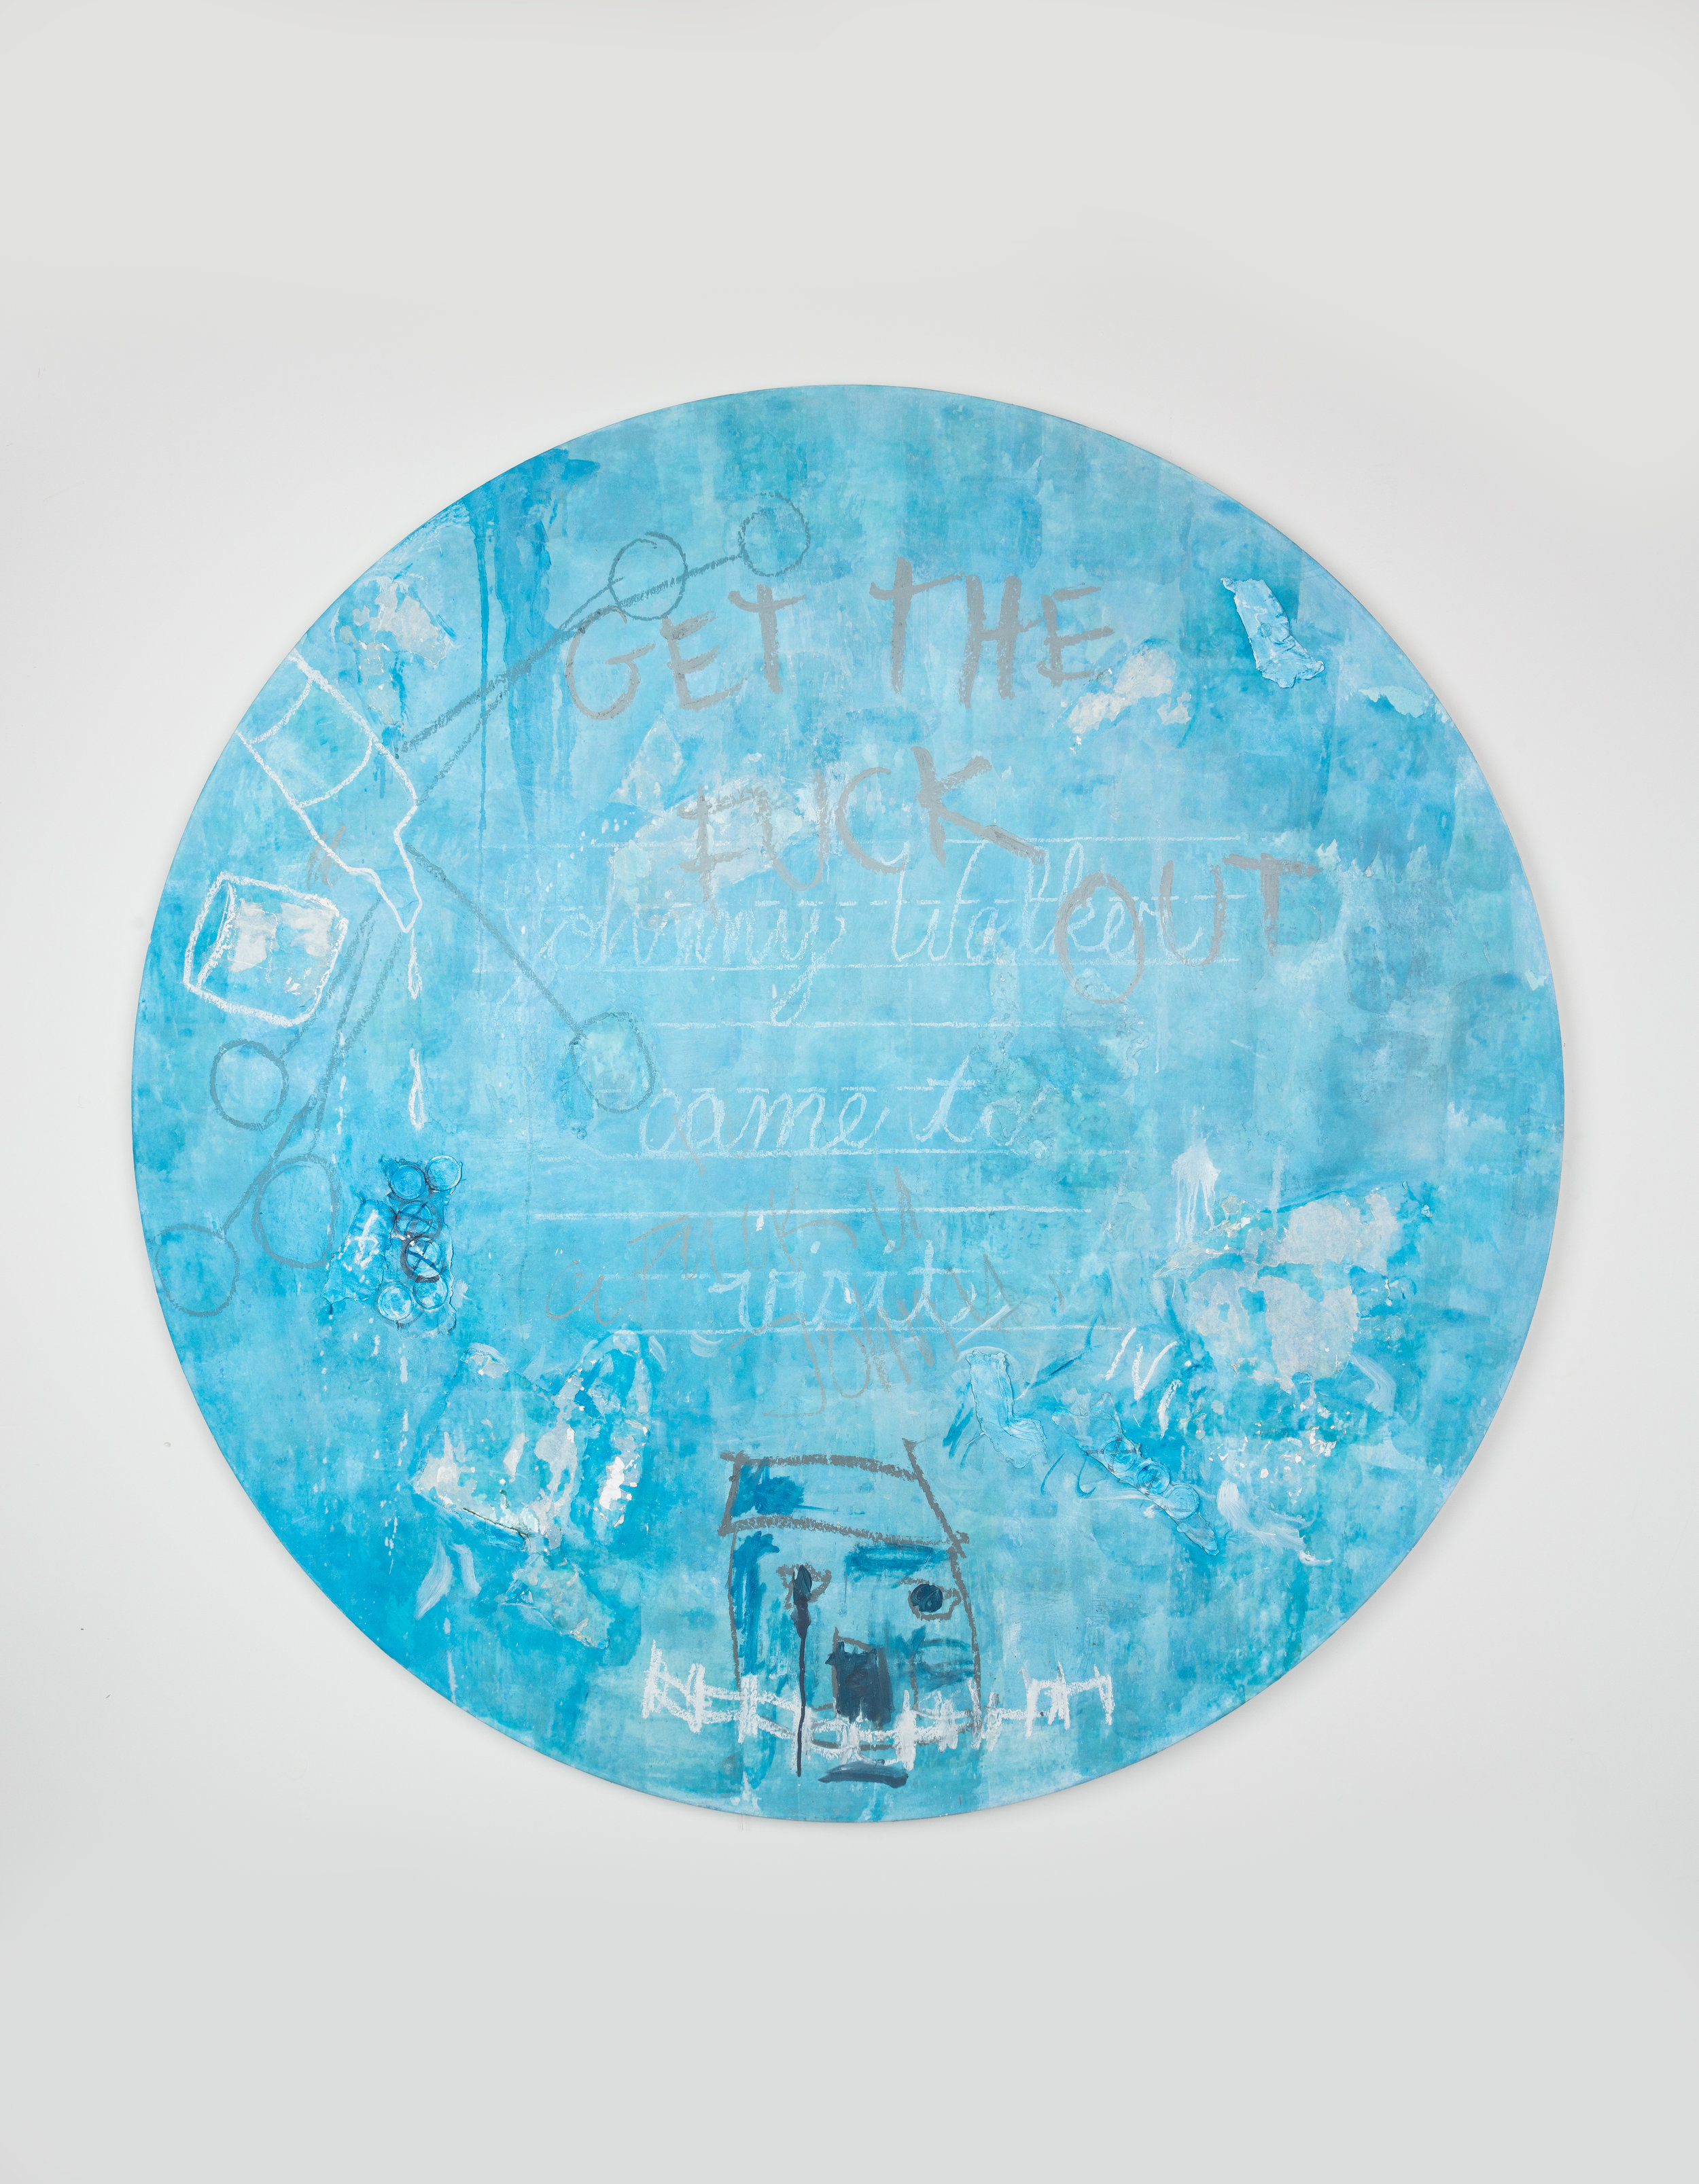 Blue Gin Fizz , 2018  Mixed media on canvas  59 x 2 inches